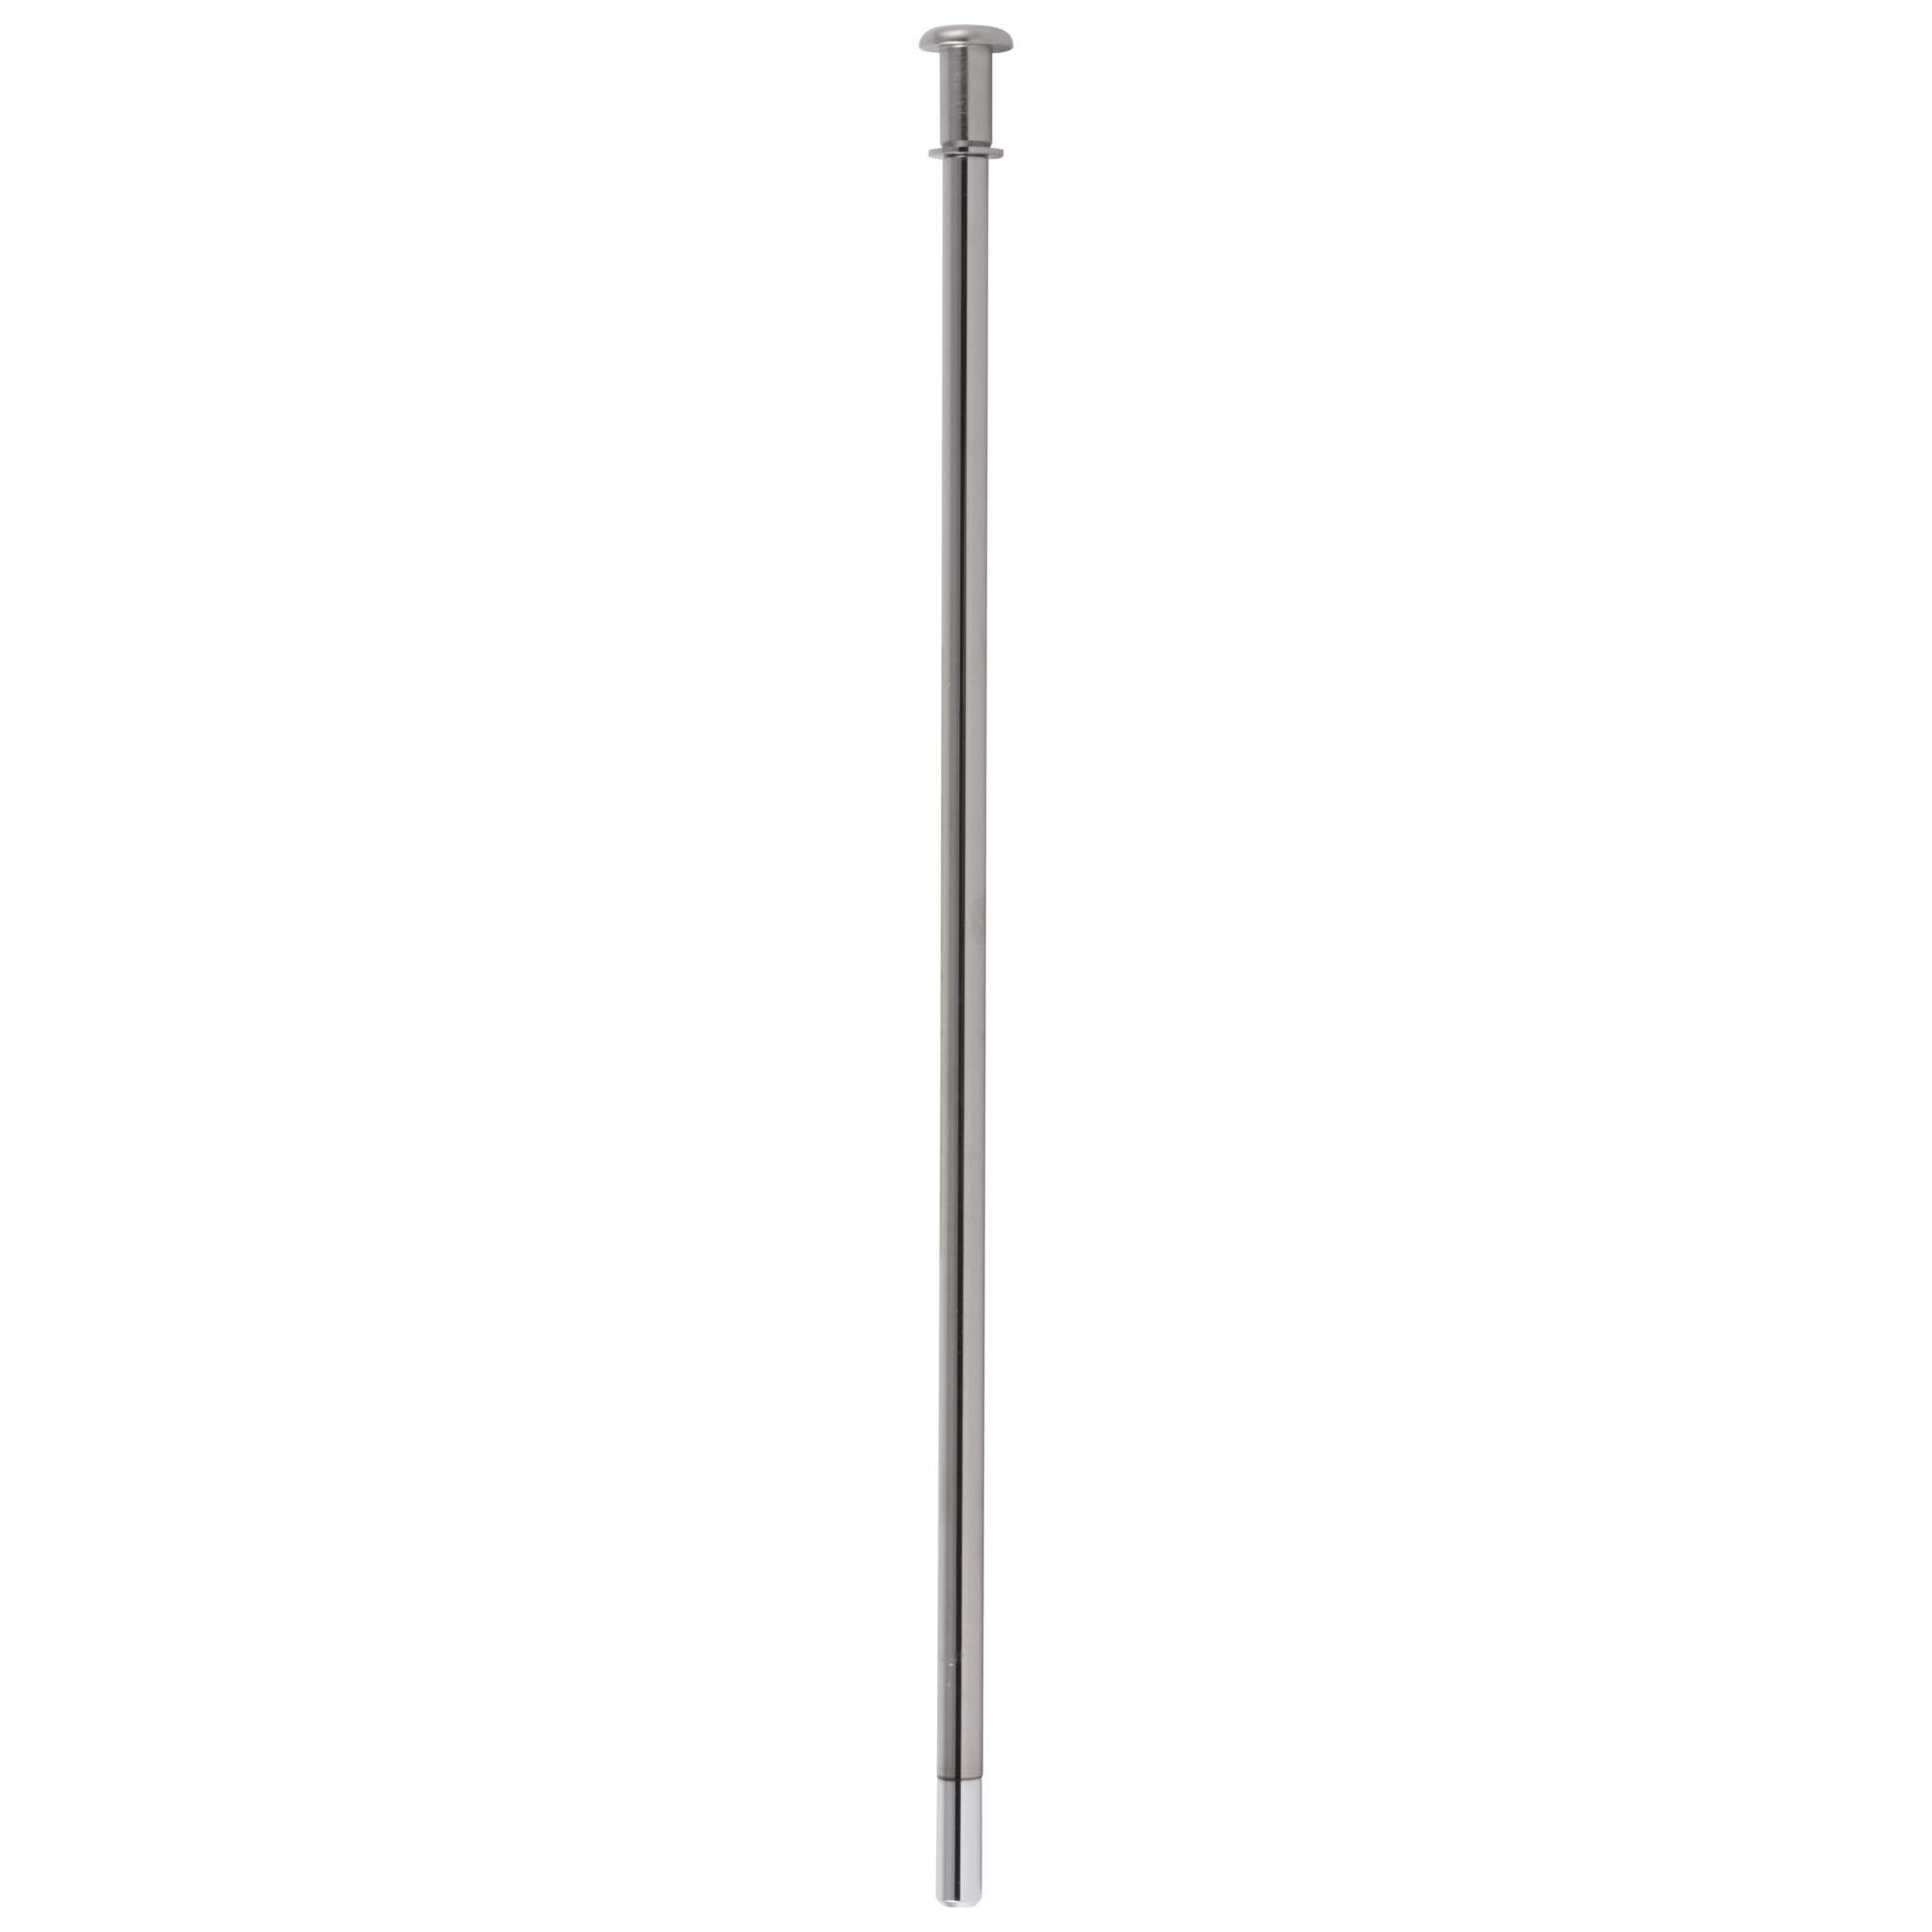 DELTA® RP6146SS Lavatory Faucet Lift Rod, Stainless Steel